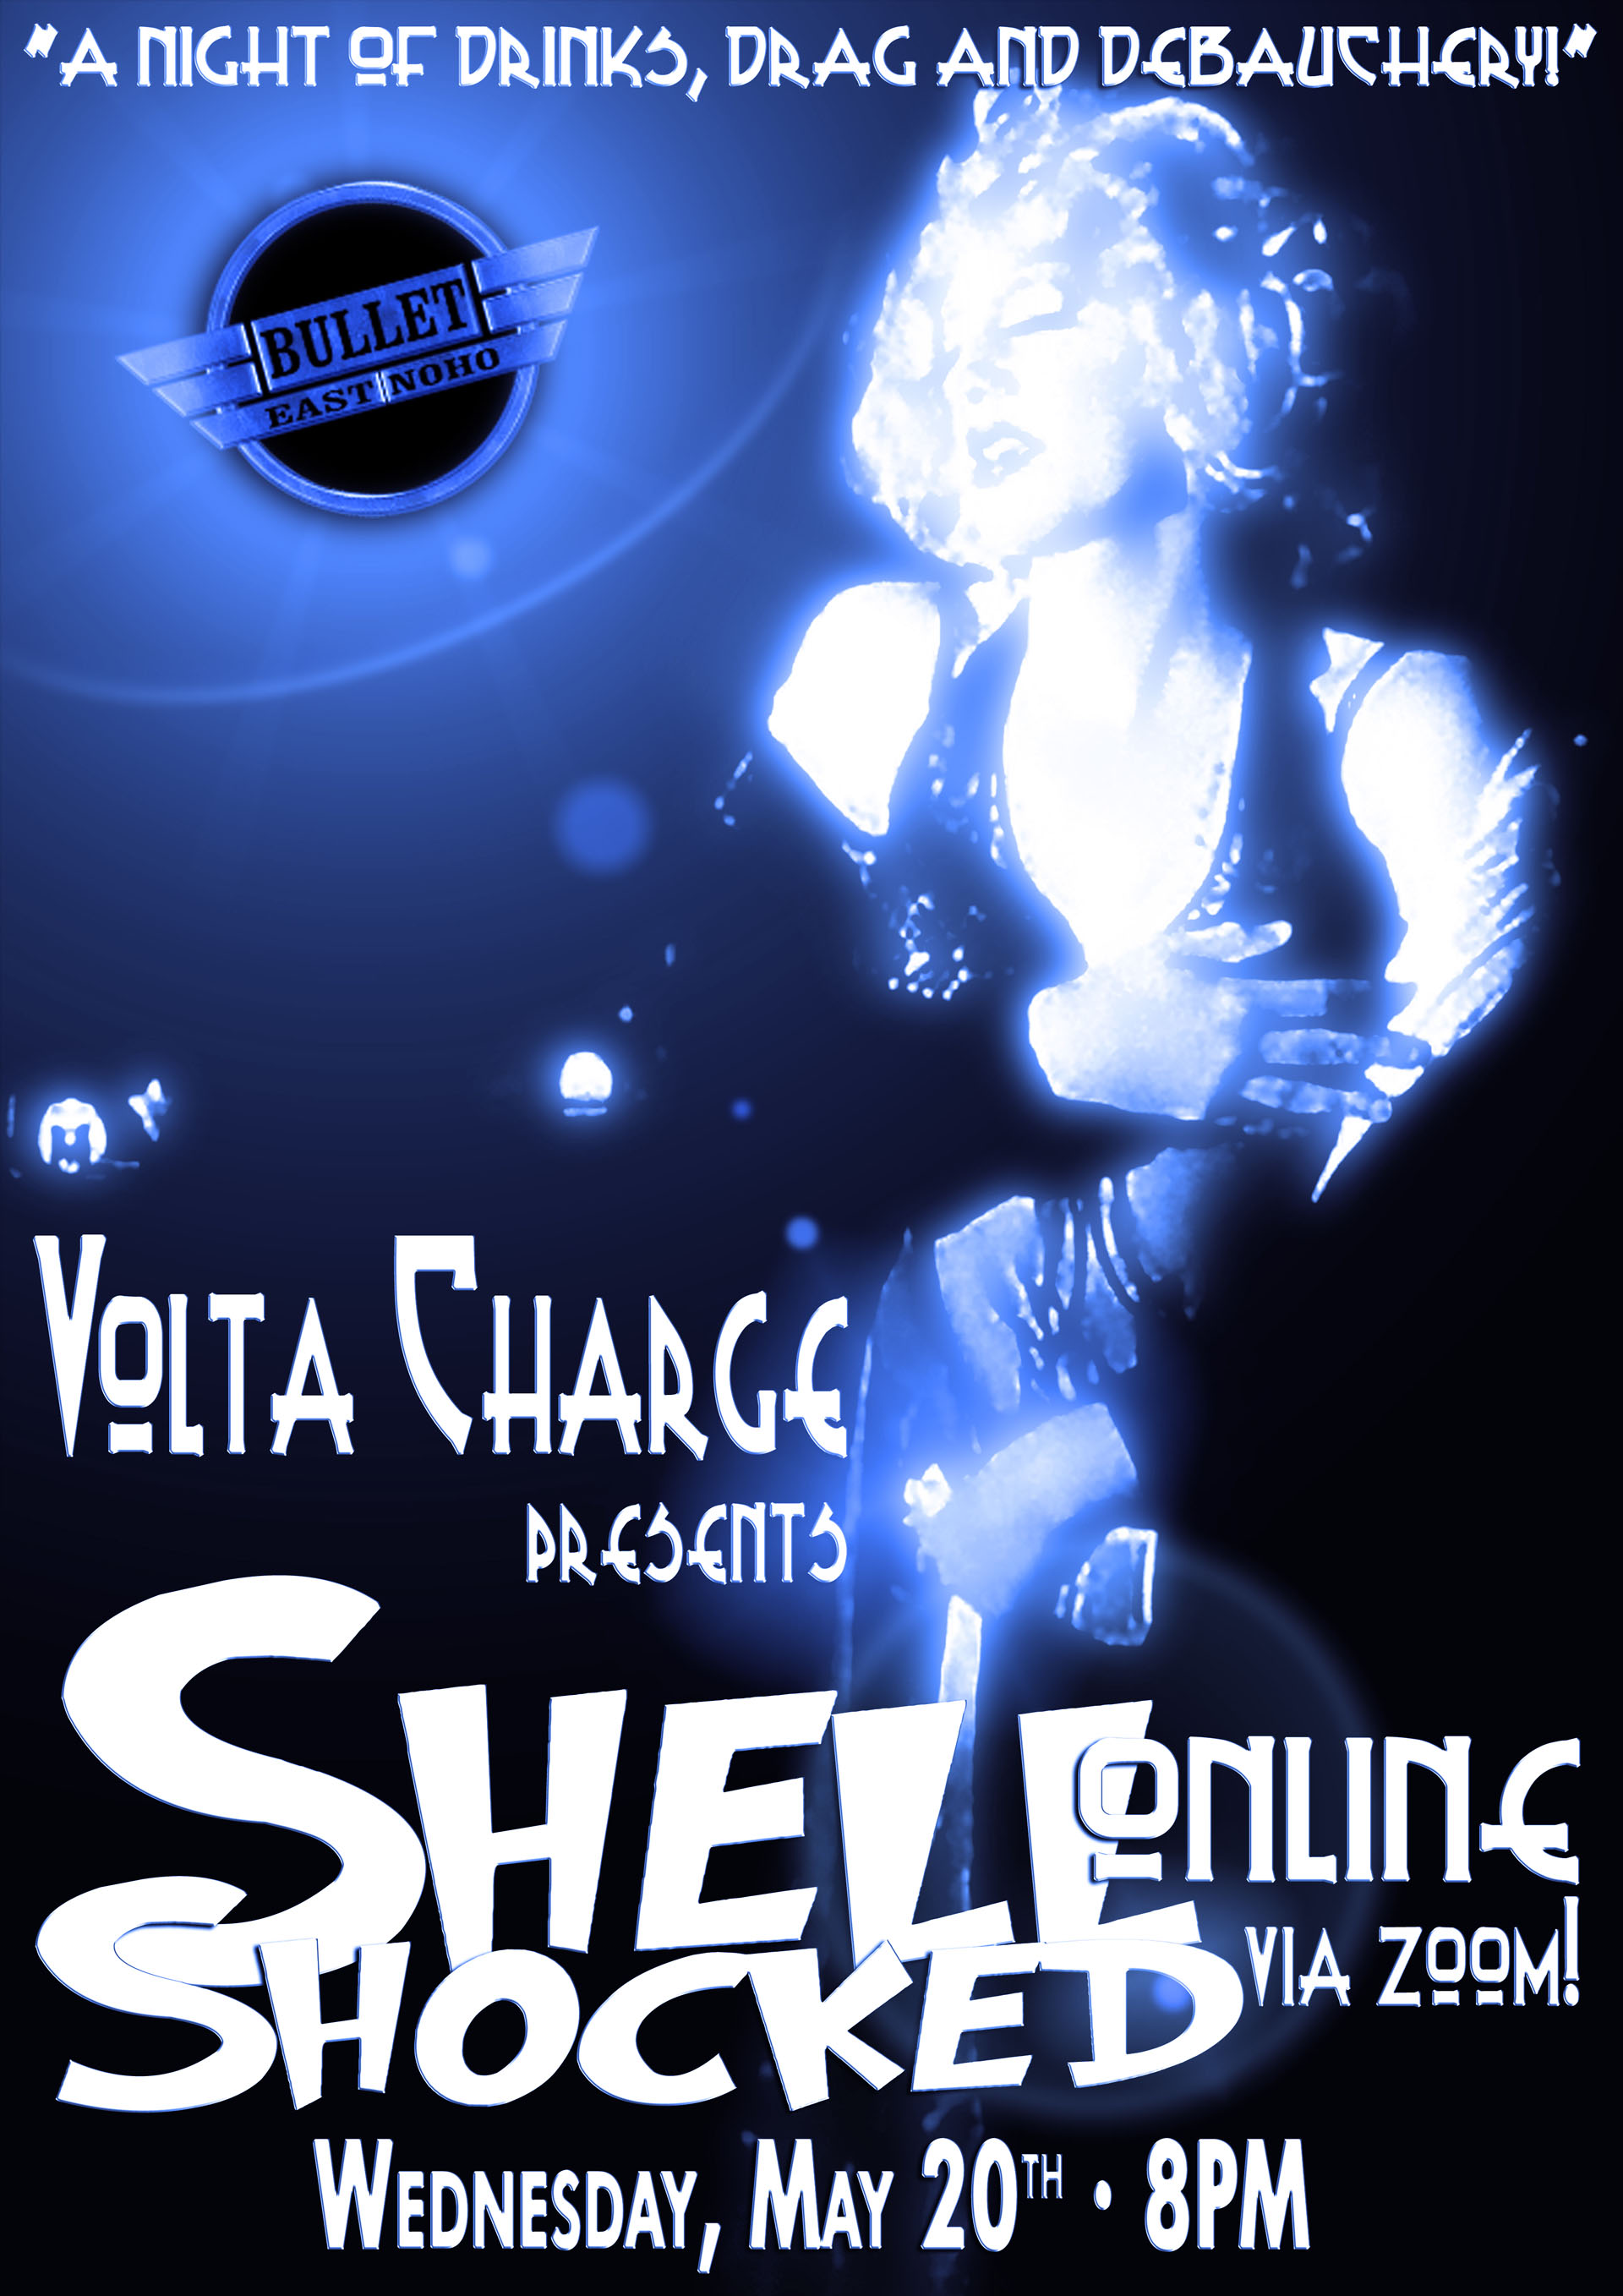 VOLTA CHARGE Presents SHELL SHOCKED ONLINE: Wednesday, May 20, 2020 at 8:00 PM via ZOOM!